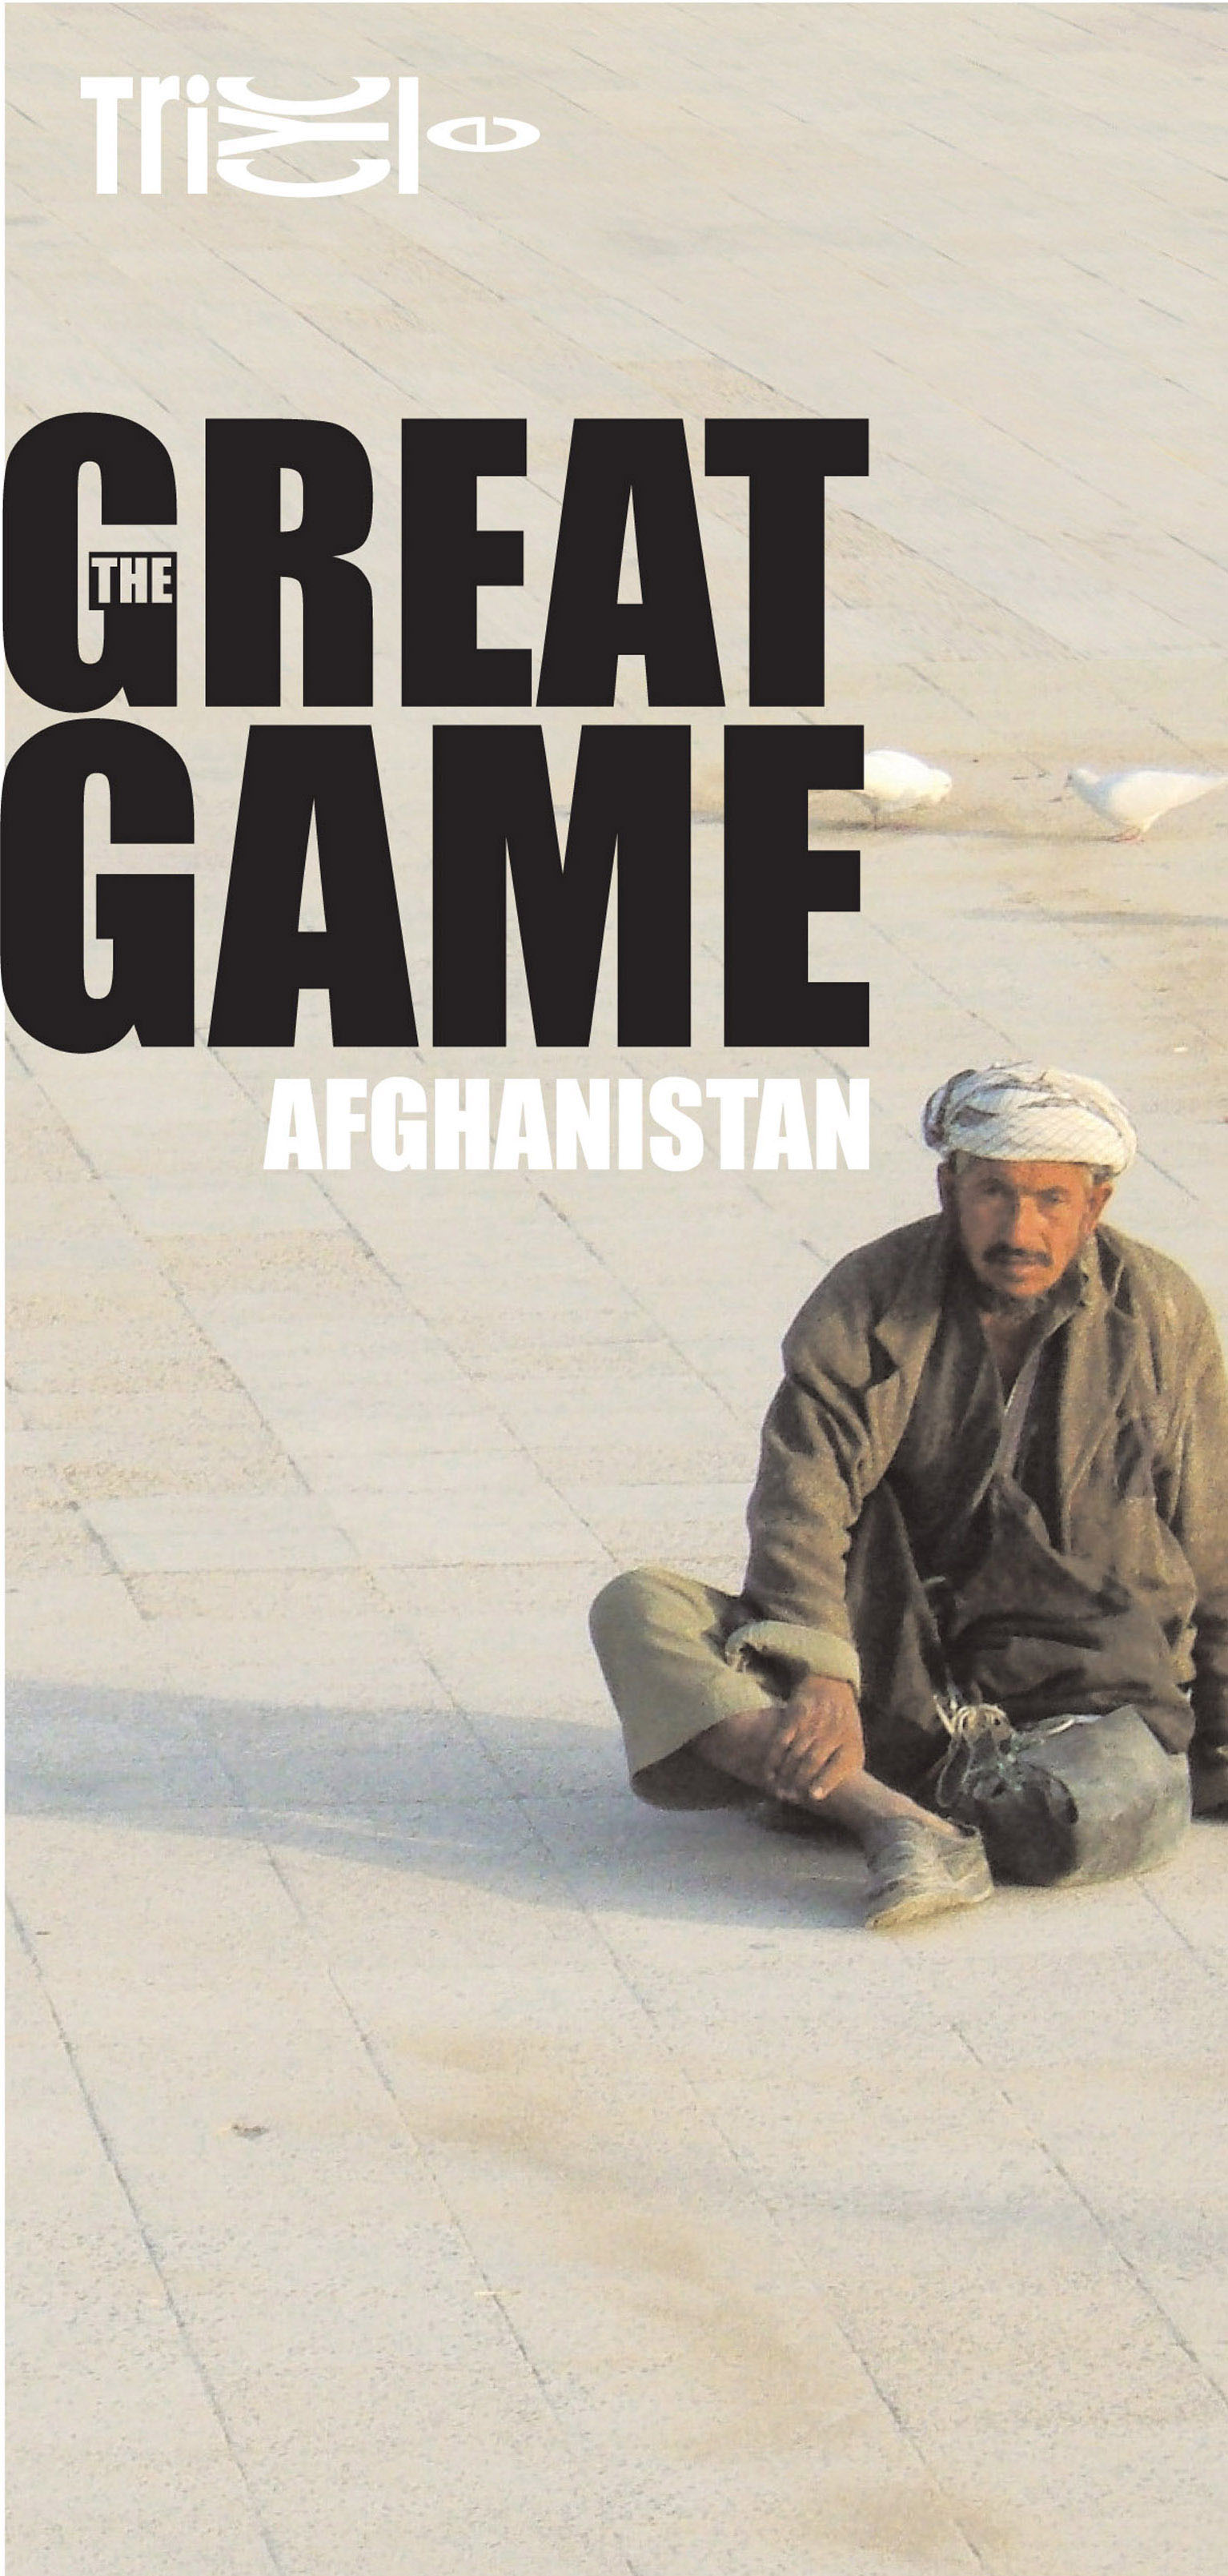 Acting Company Announced for Tricyle Theatre's THE GREAT GAME: AFGHANISTAN